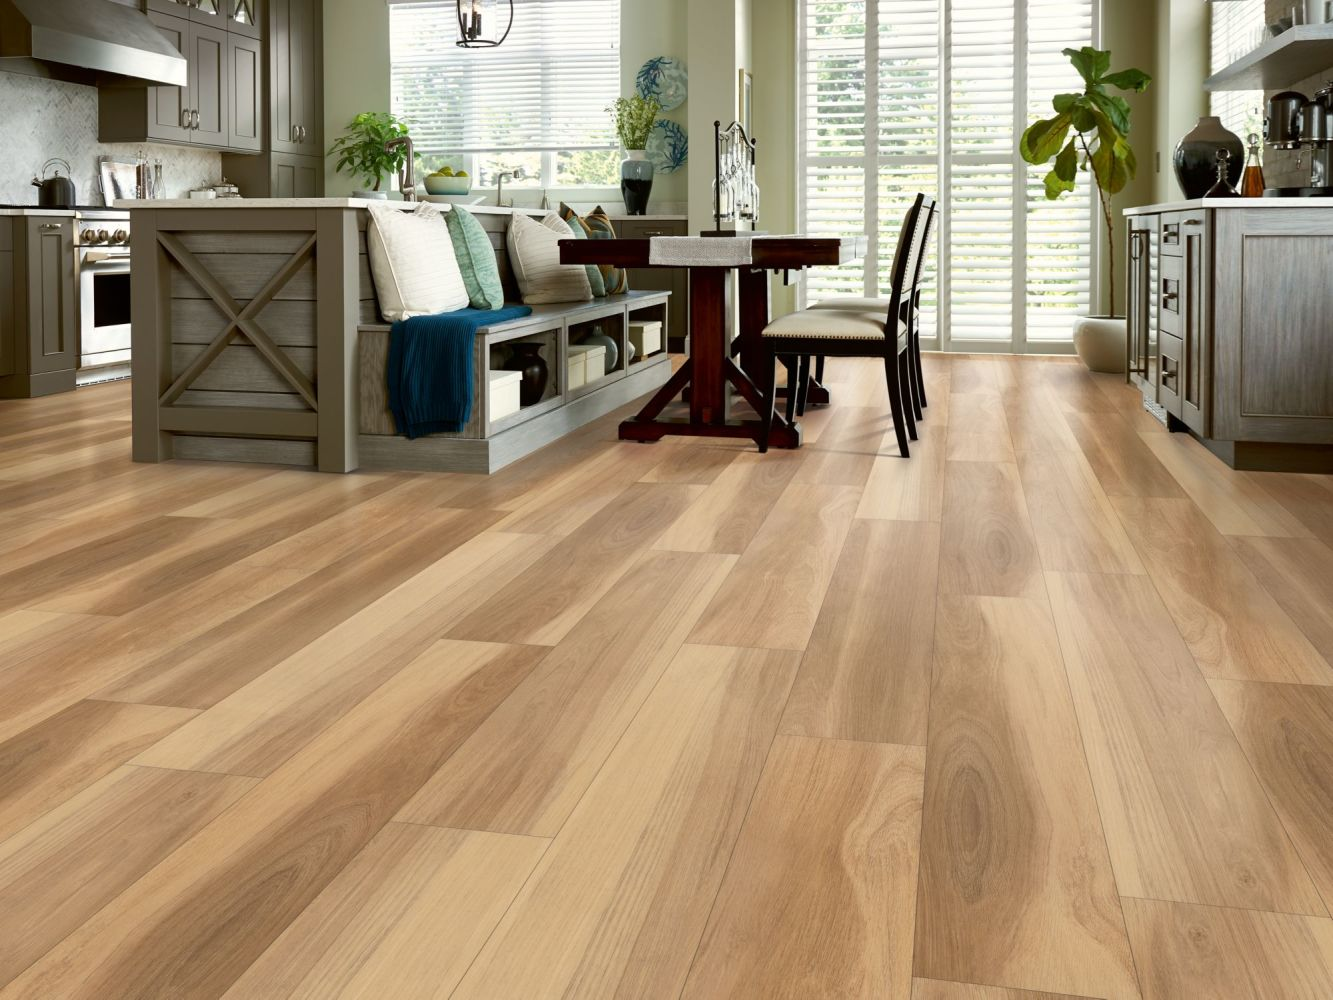 Shaw Floors Vinyl Residential Intrepid HD Plus Khaki Oak 00699_2024V